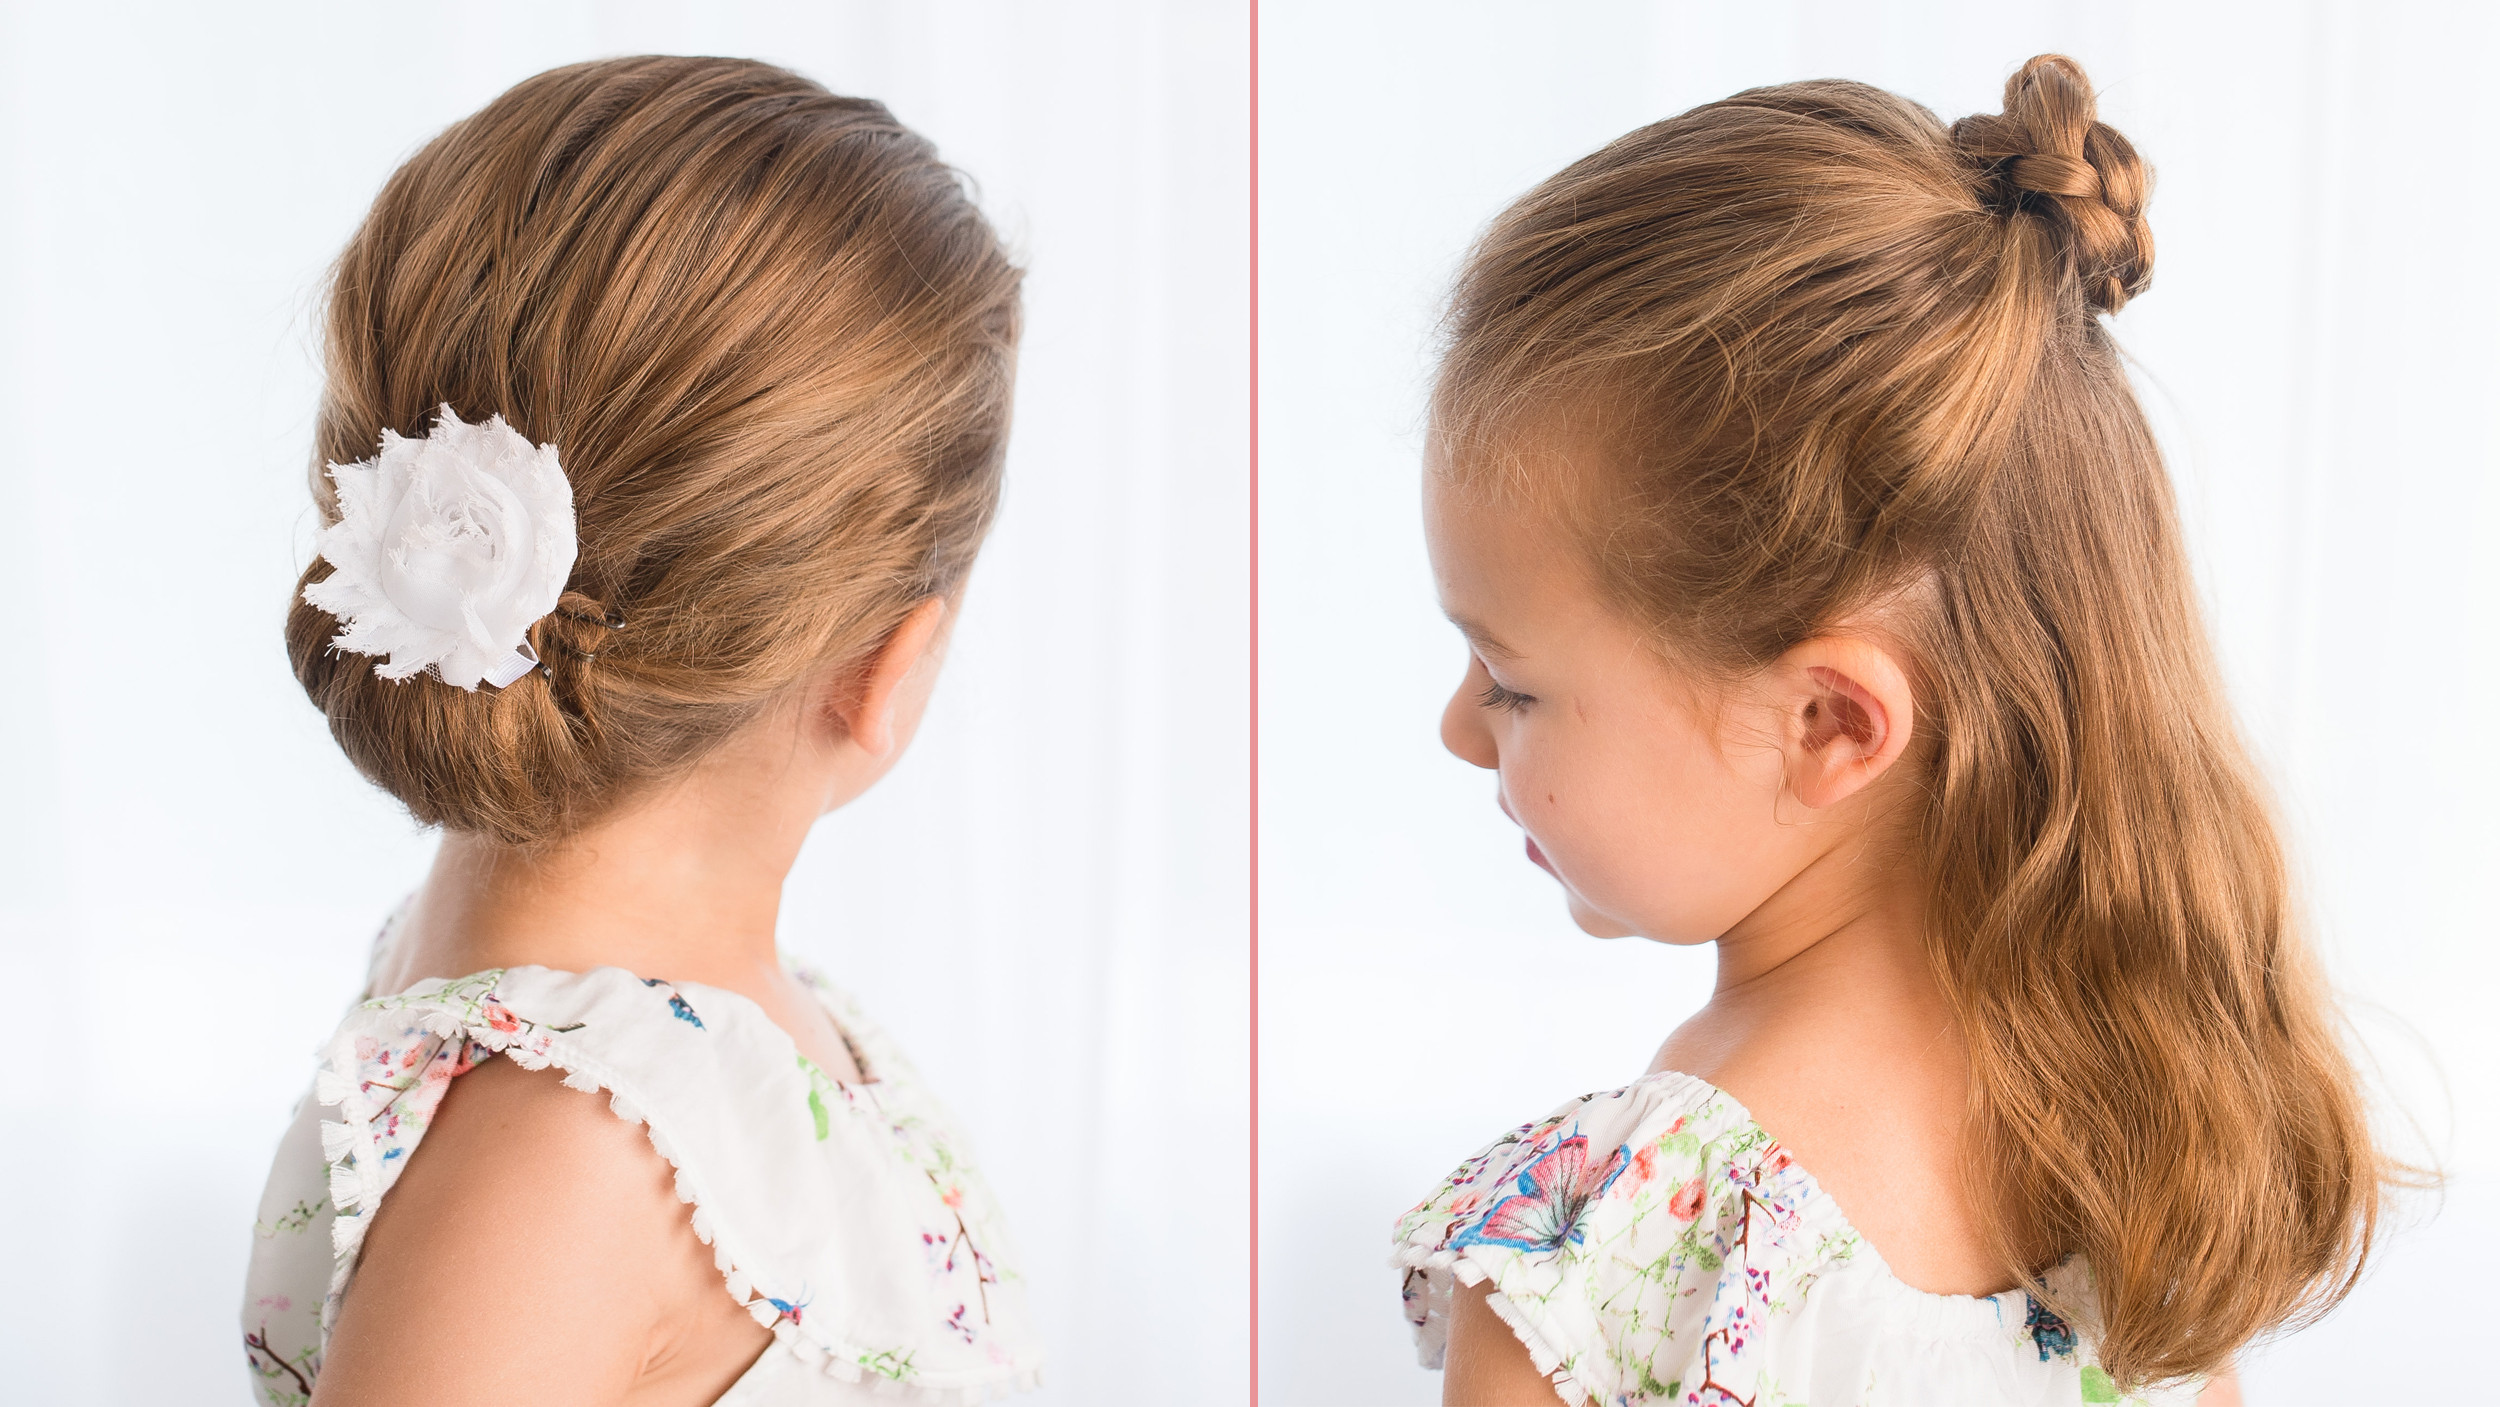 Best ideas about Easy School Hairstyles . Save or Pin Easy hairstyles for girls that you can create in minutes Now.